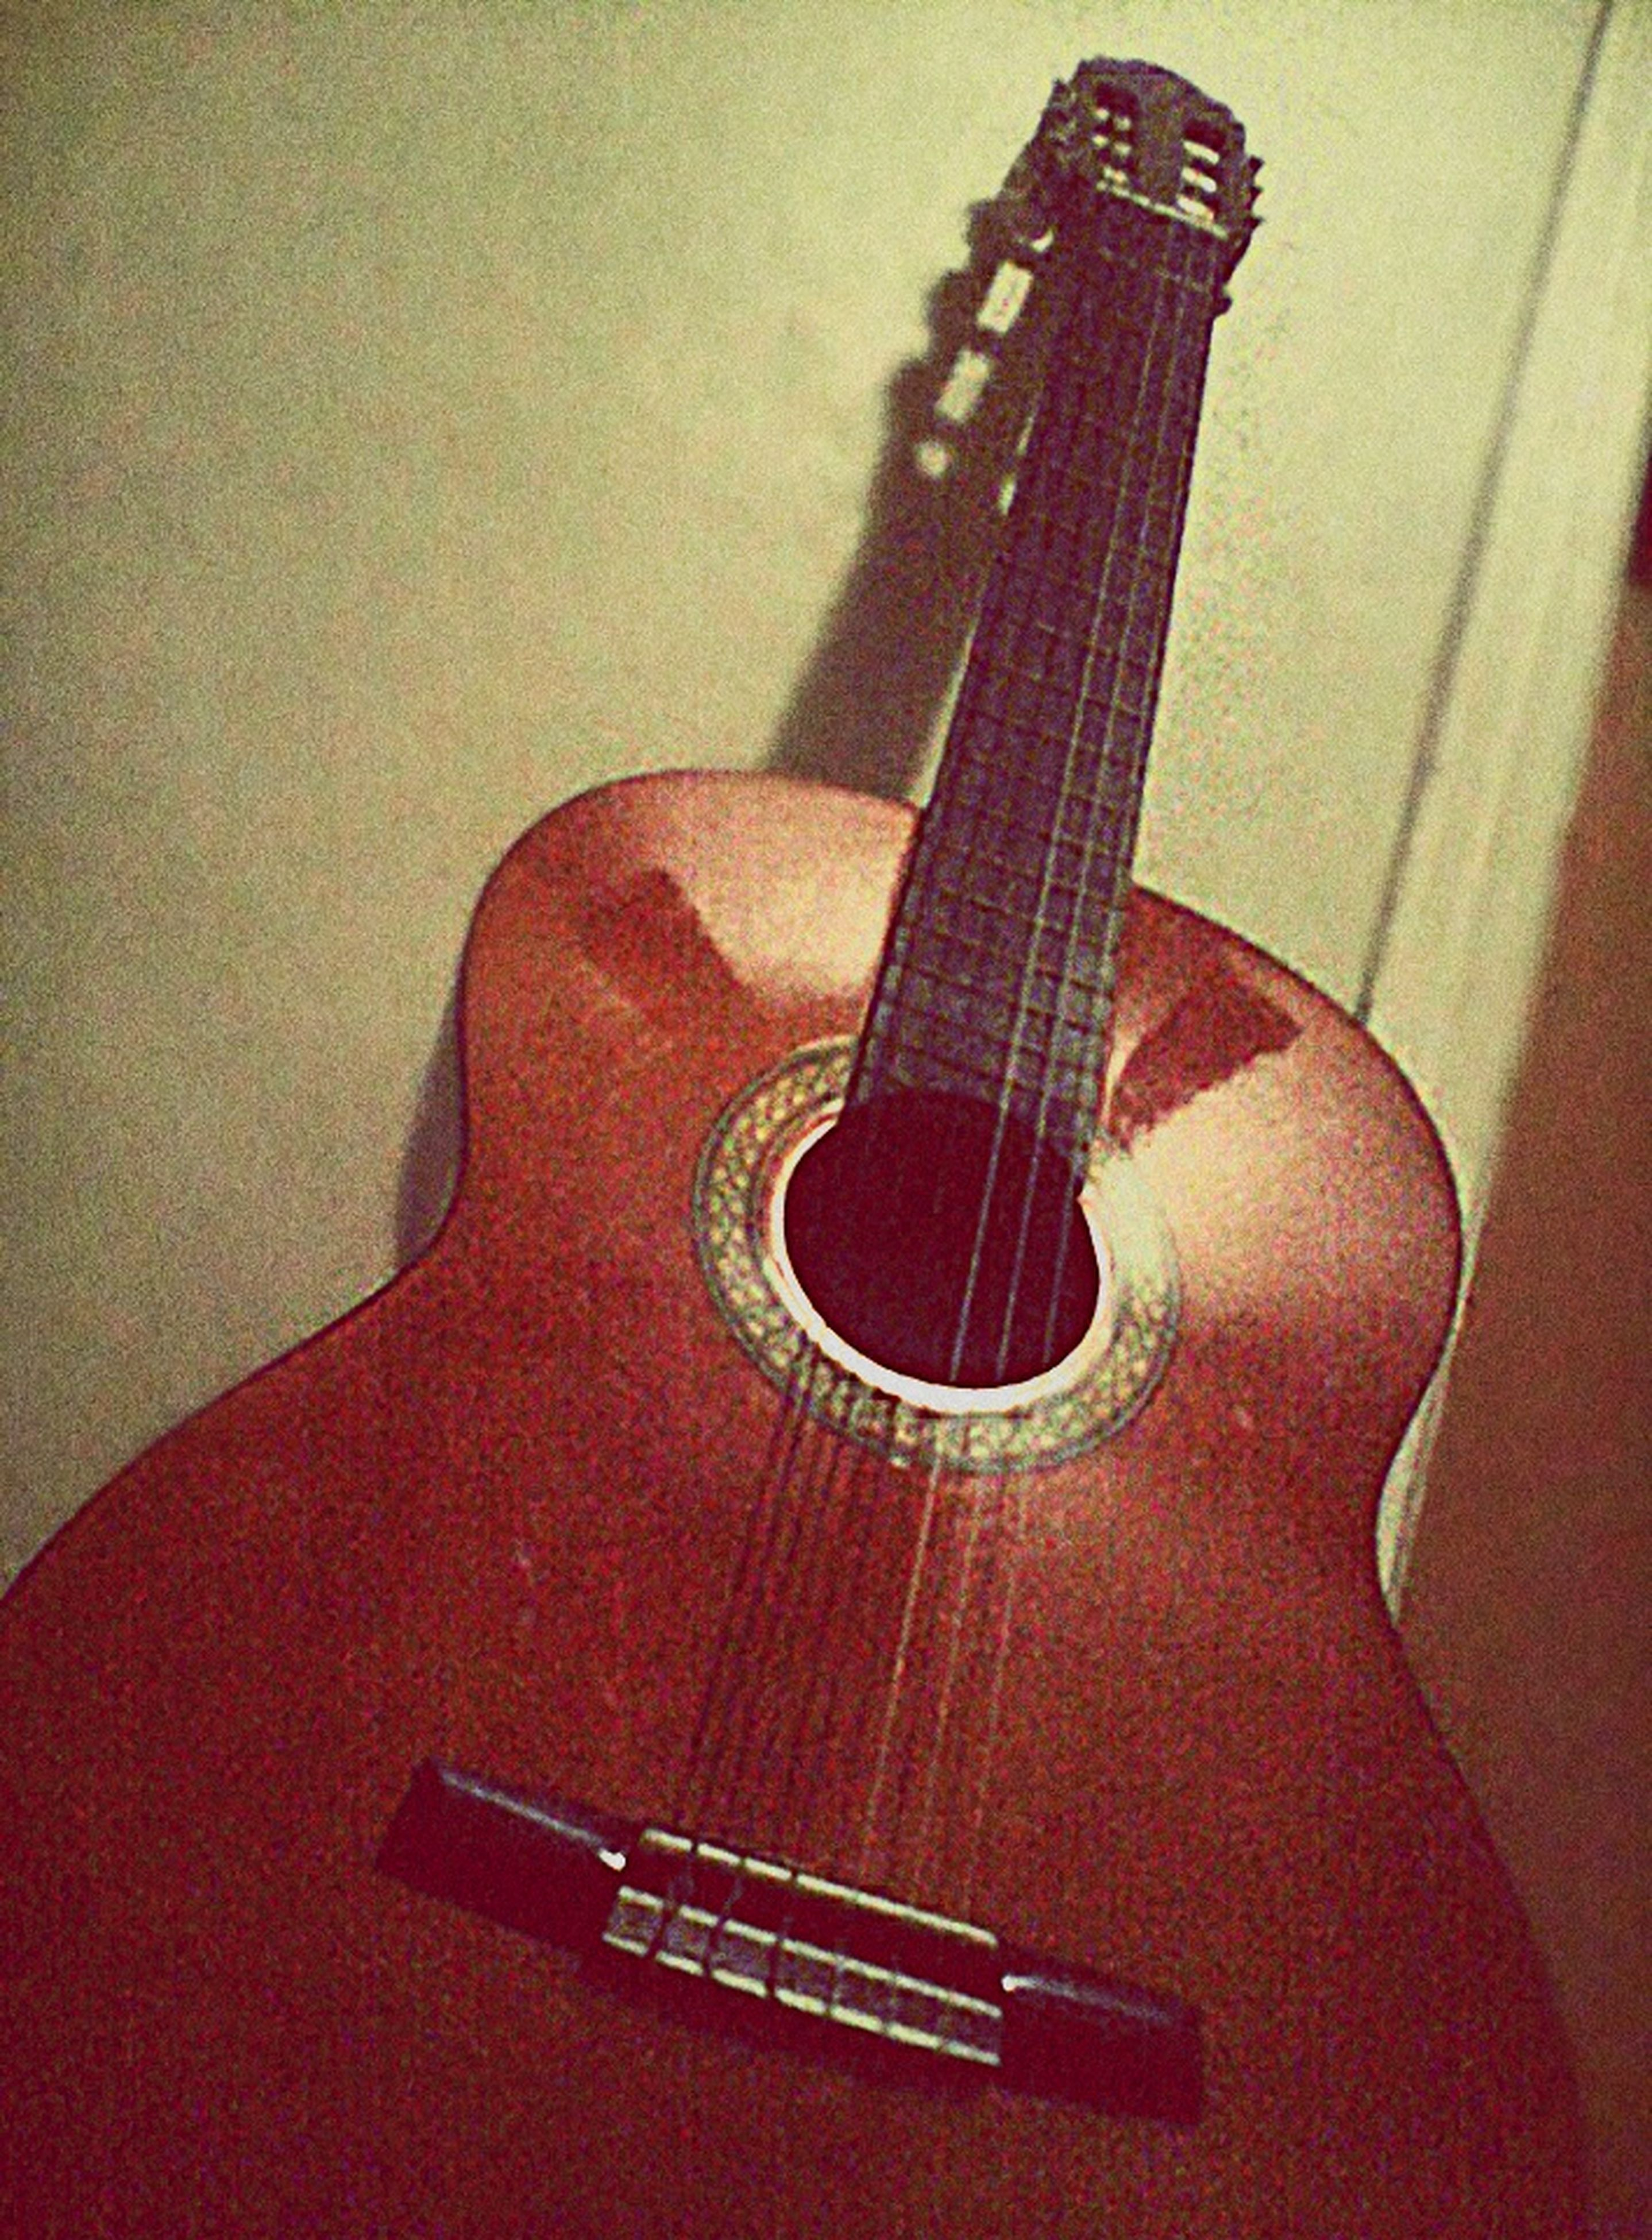 musical instrument, music, guitar, musical instrument string, musical equipment, arts culture and entertainment, indoors, string instrument, close-up, single object, acoustic guitar, still life, metal, no people, wall - building feature, selective focus, metallic, wood - material, equipment, high angle view